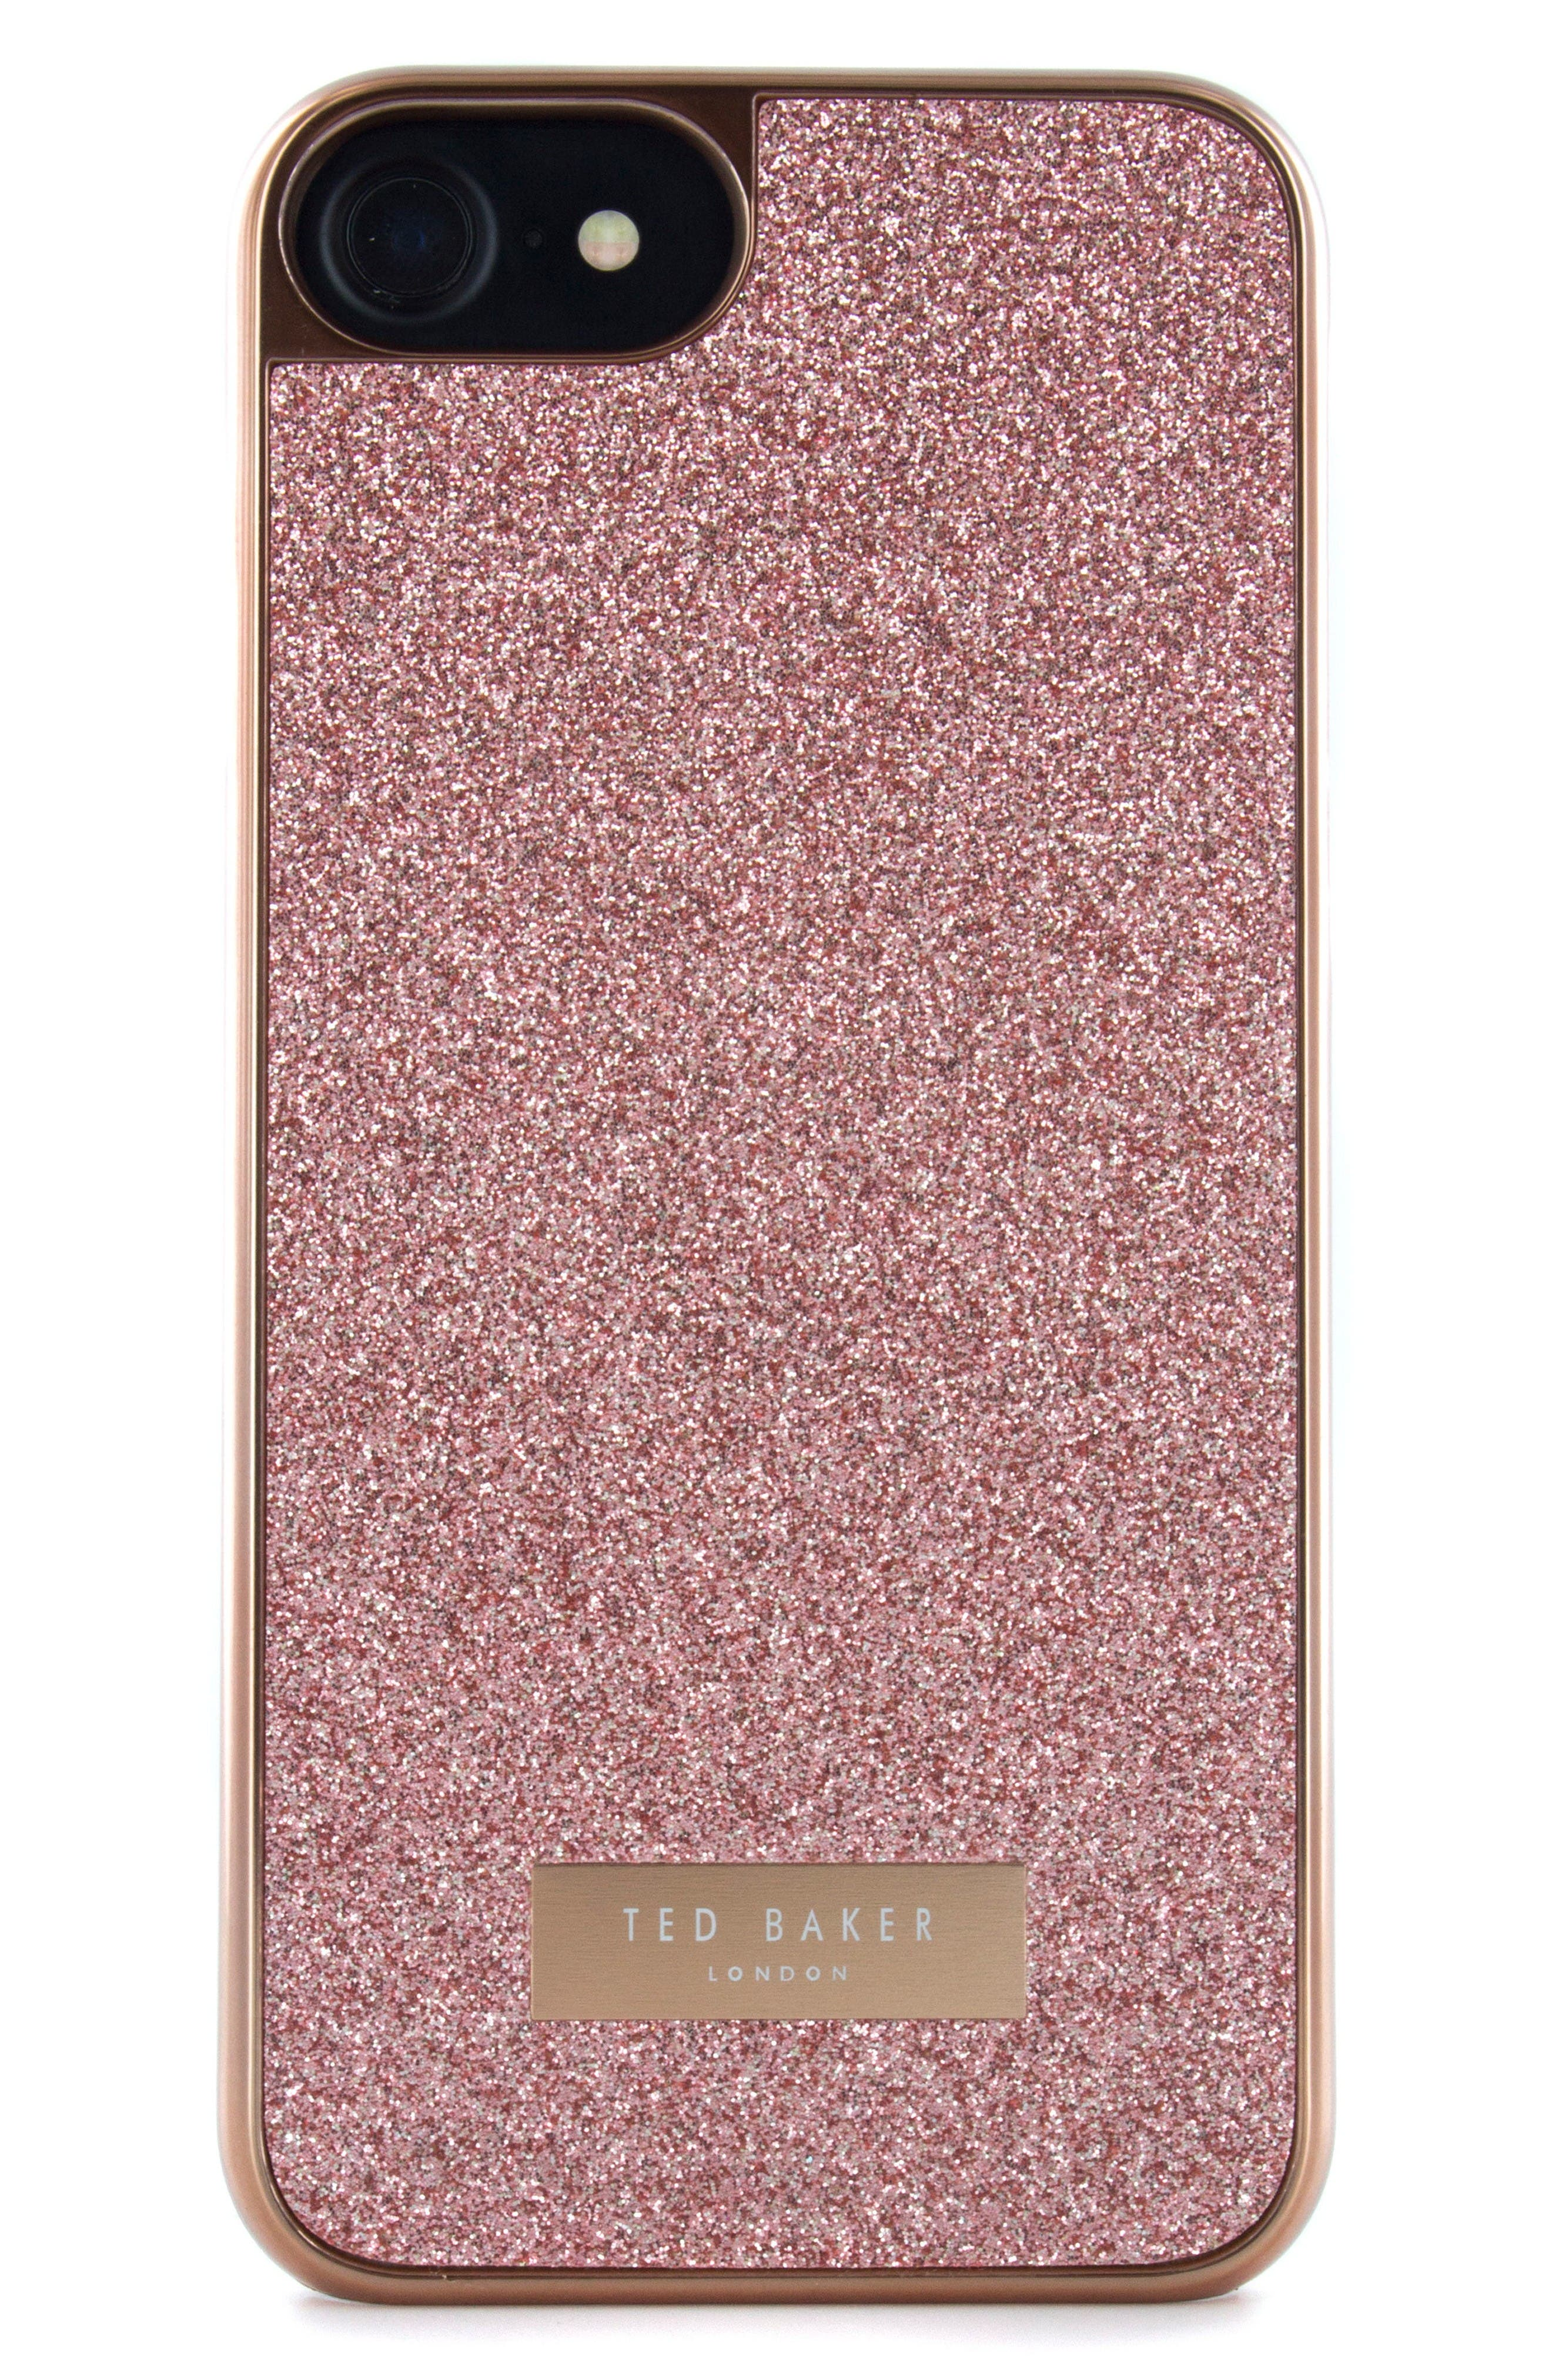 Alternate Image 1 Selected - Ted Baker London Sparkles iPhone 6/6s/7/8 & 6/6s/7/8 Plus Case